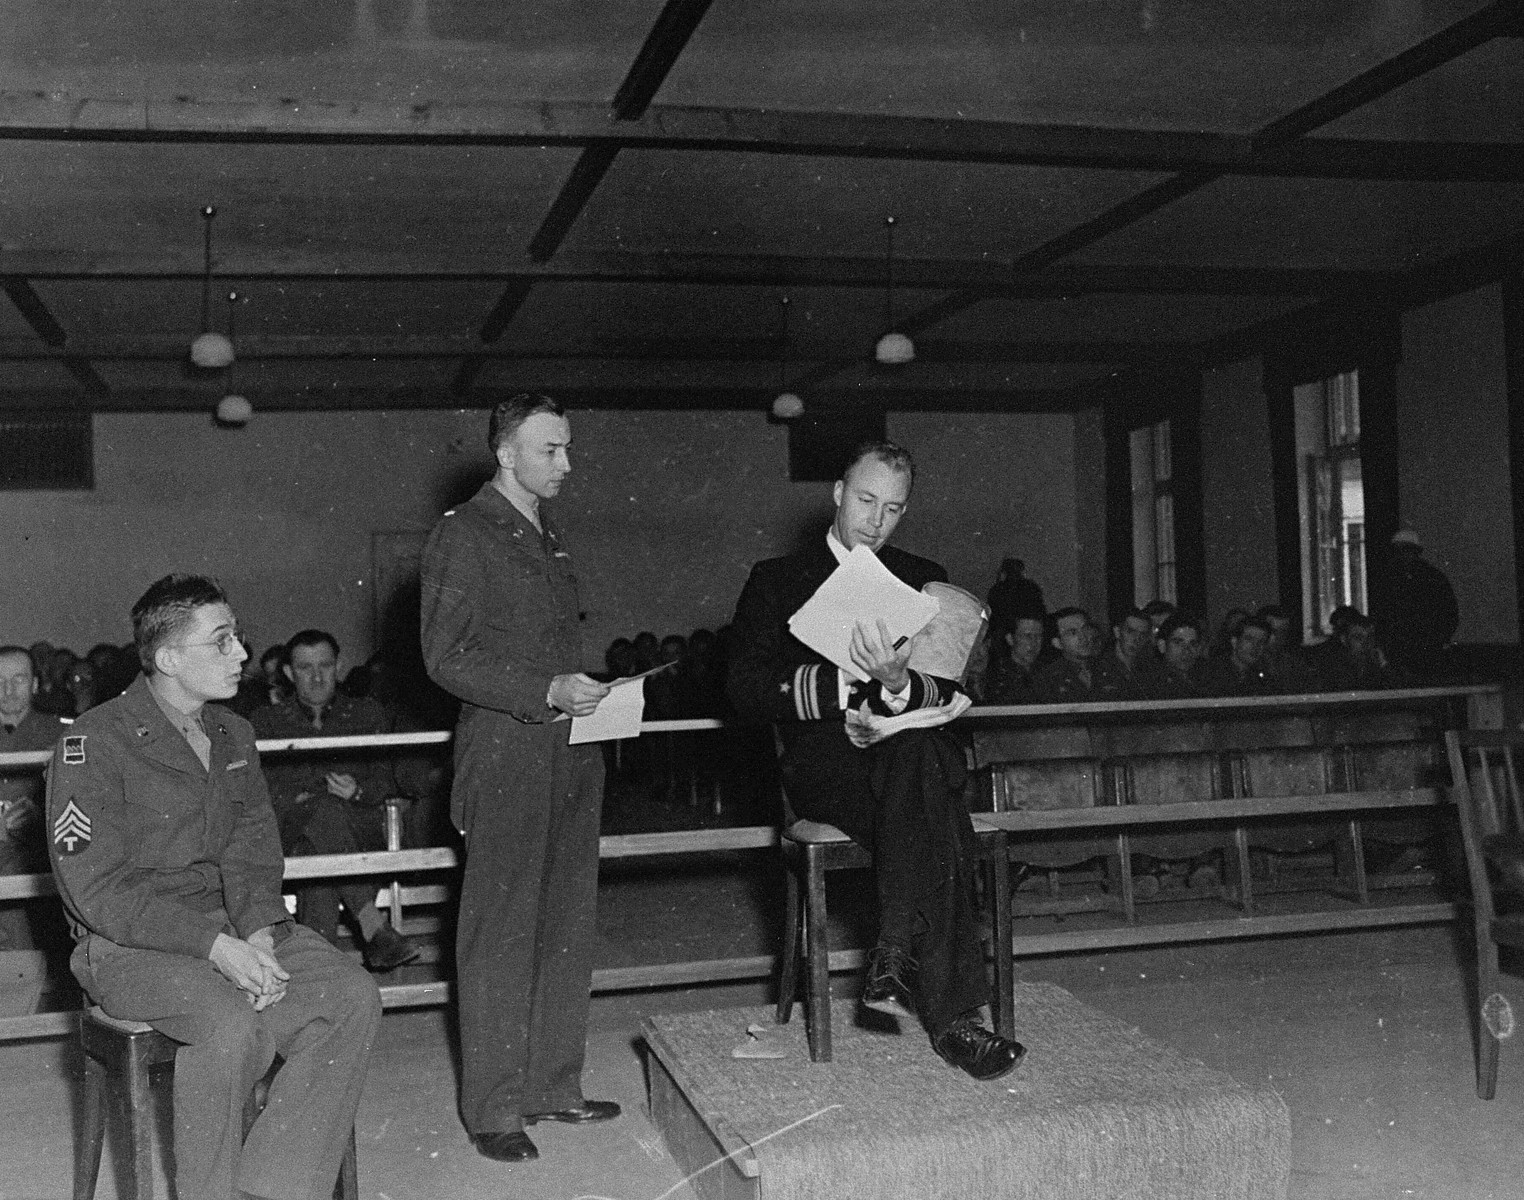 A witness testifies for the prosecution at the trial of 61 former camp personnel and prisoners from Mauthausen.    Testifying is Lieutenant Jack Taylor (b. 1908).  Lt. Taylor served in the OSS (American Secret Service).  He was captured by the Germans and imprisoned in Mauthausen.  Also pictured are Herbert Rosenstock, an interpreter (far left) and U.S. prosecutor William Denson (middle).